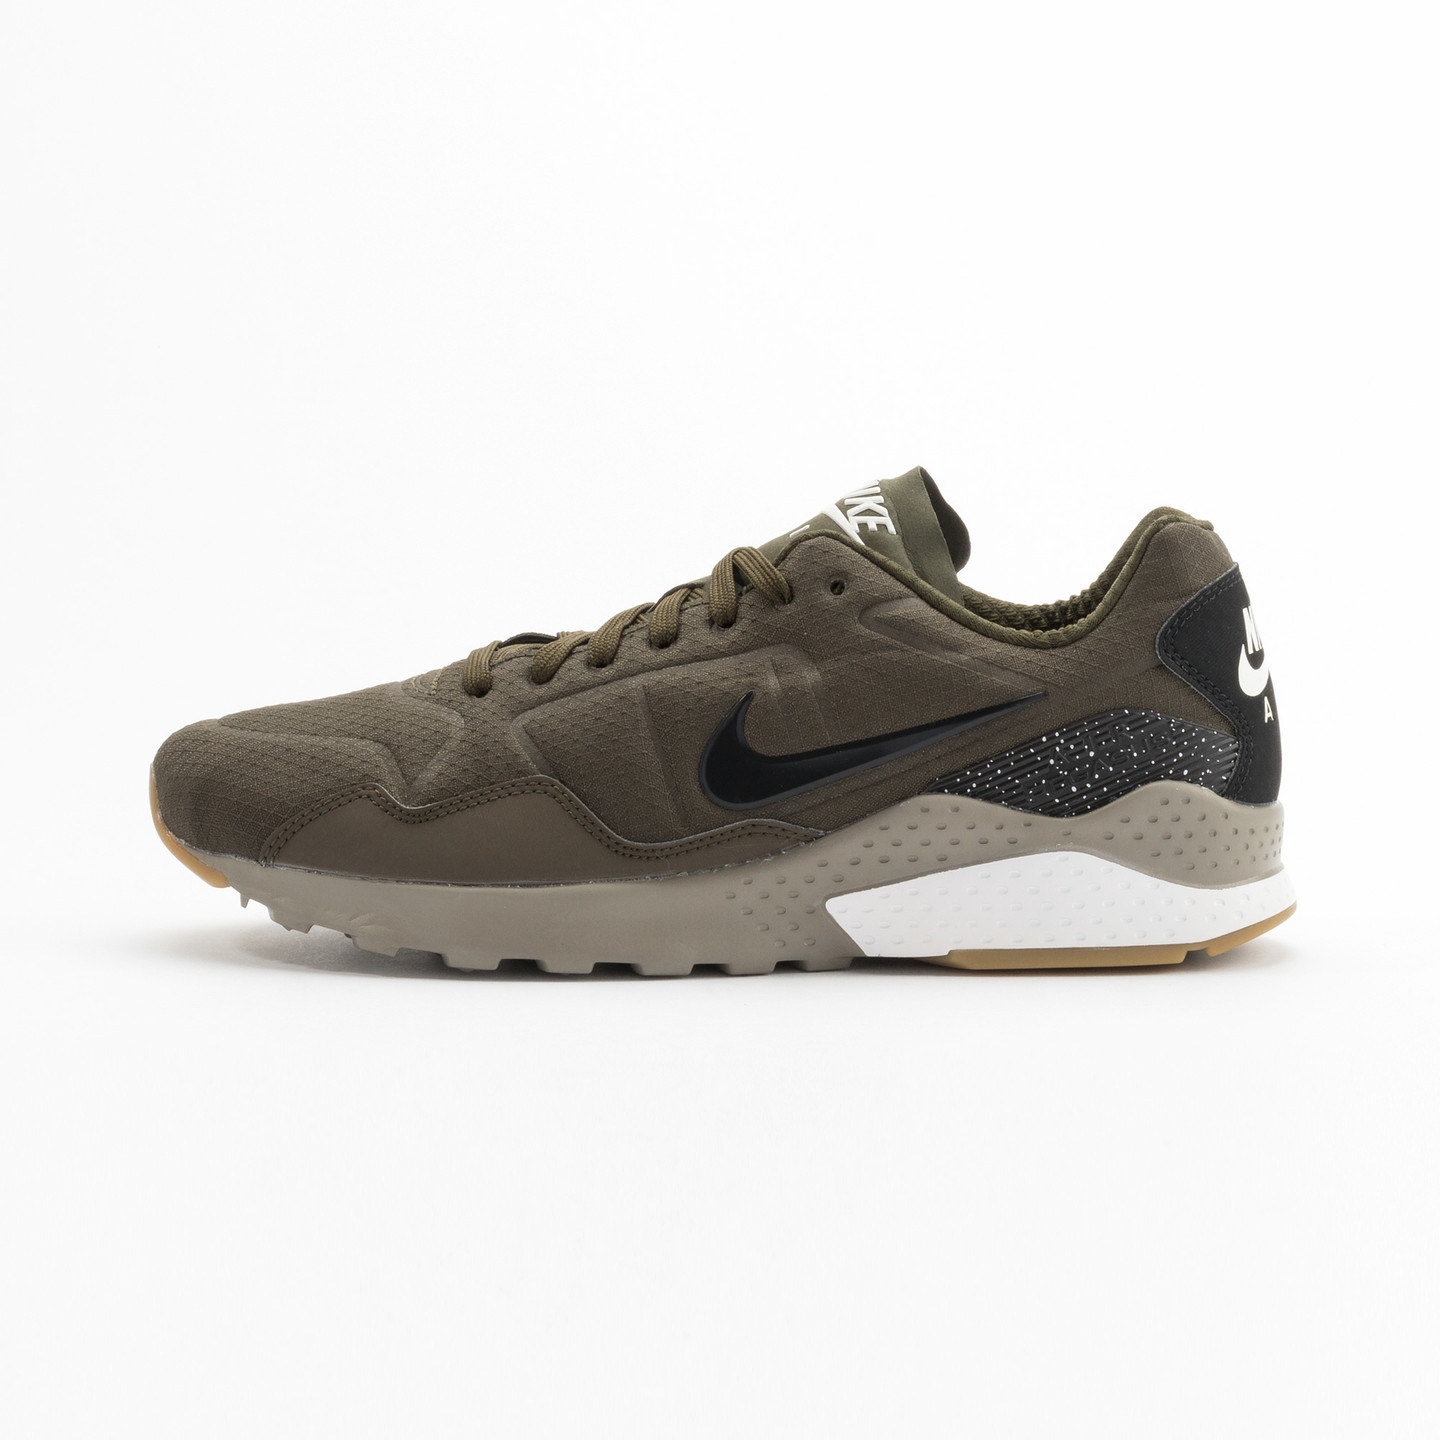 Nike Air Zoom Pegasus ´92 Dark Loden / Black / Light Taupe 844652-300-46